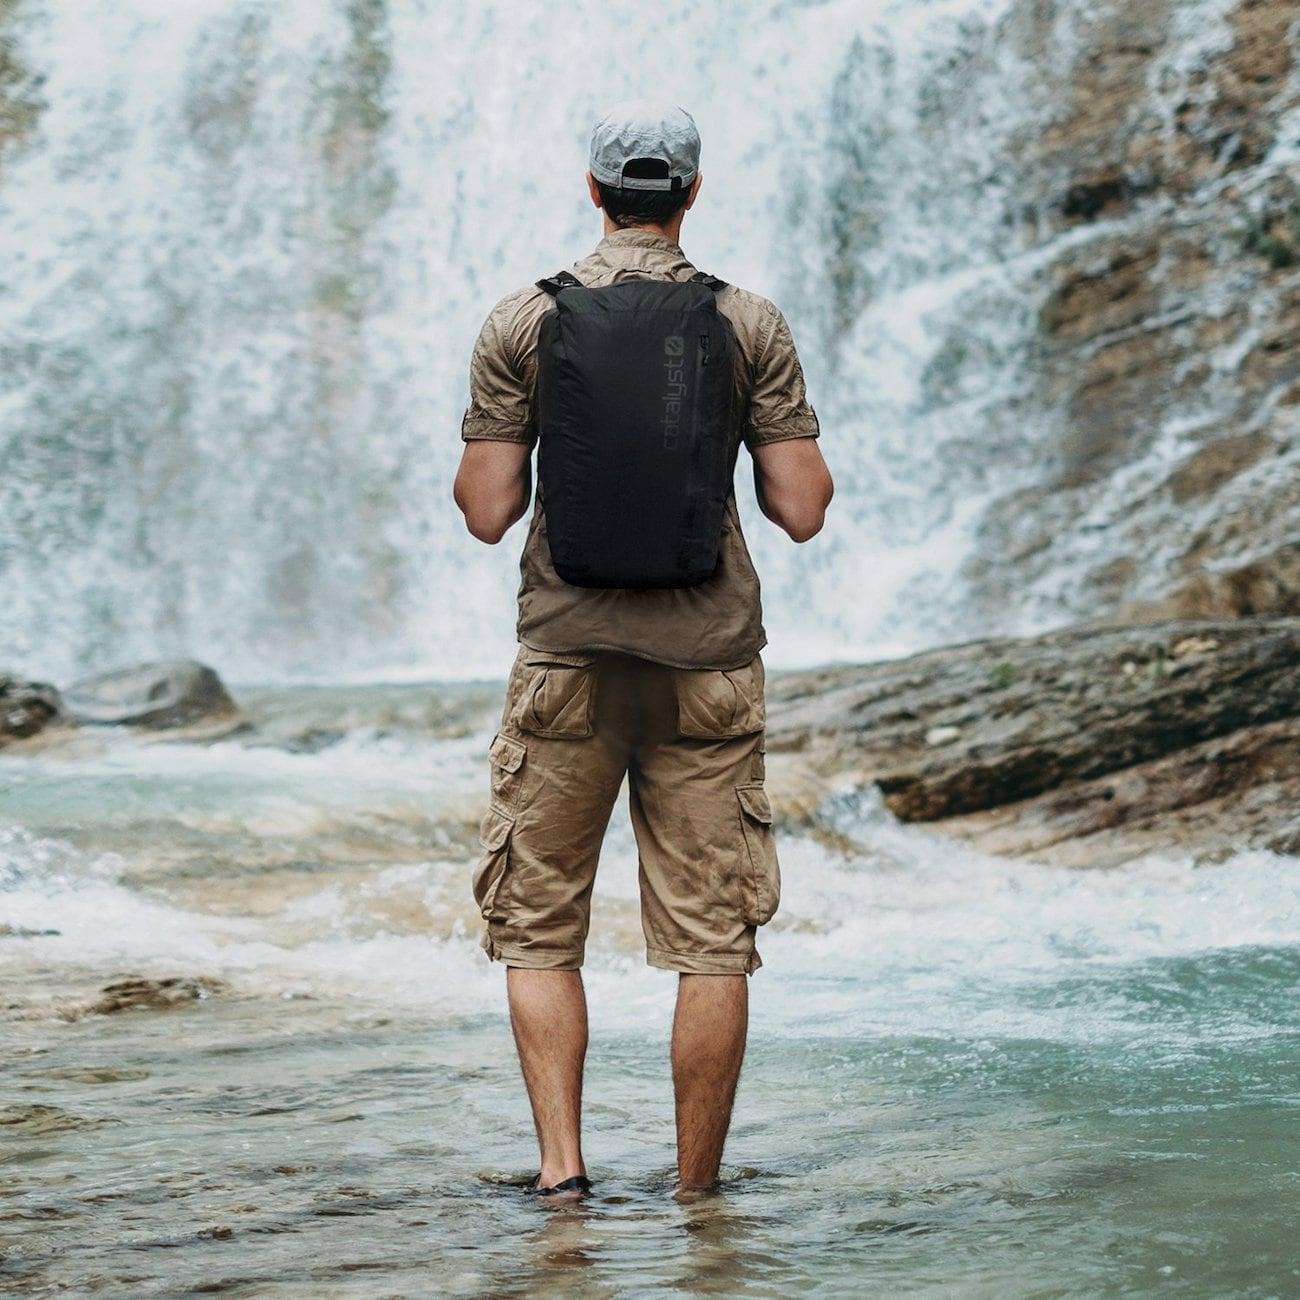 Catalyst Waterproof Backpack Portable 20L Bag keeps your devices safe from the elements